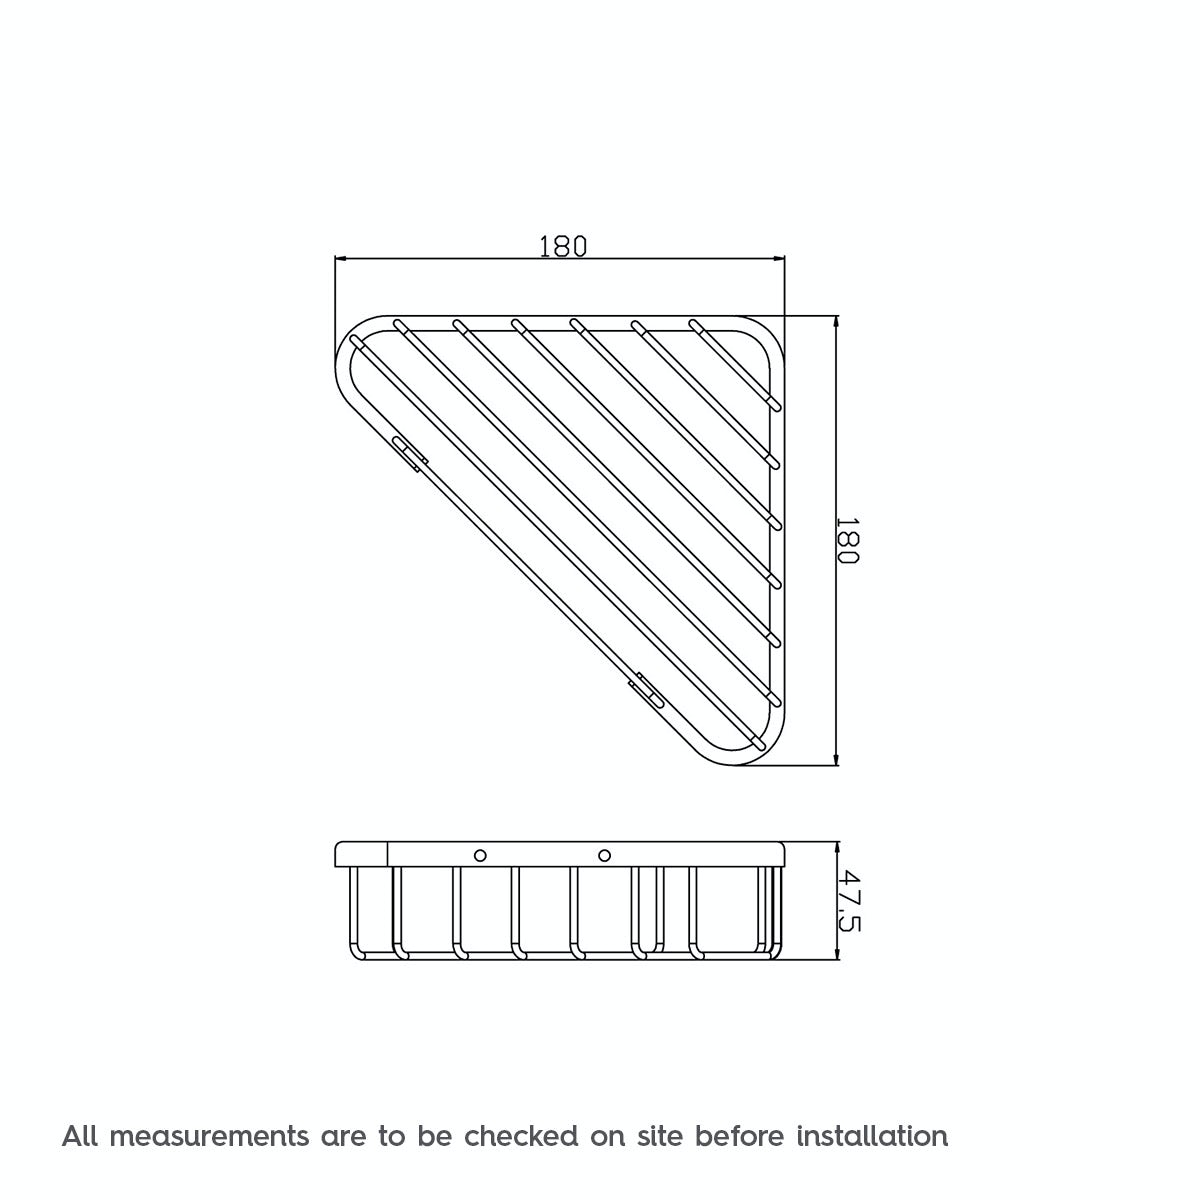 Dimensions for Orchard Options brass single triangular shower caddy